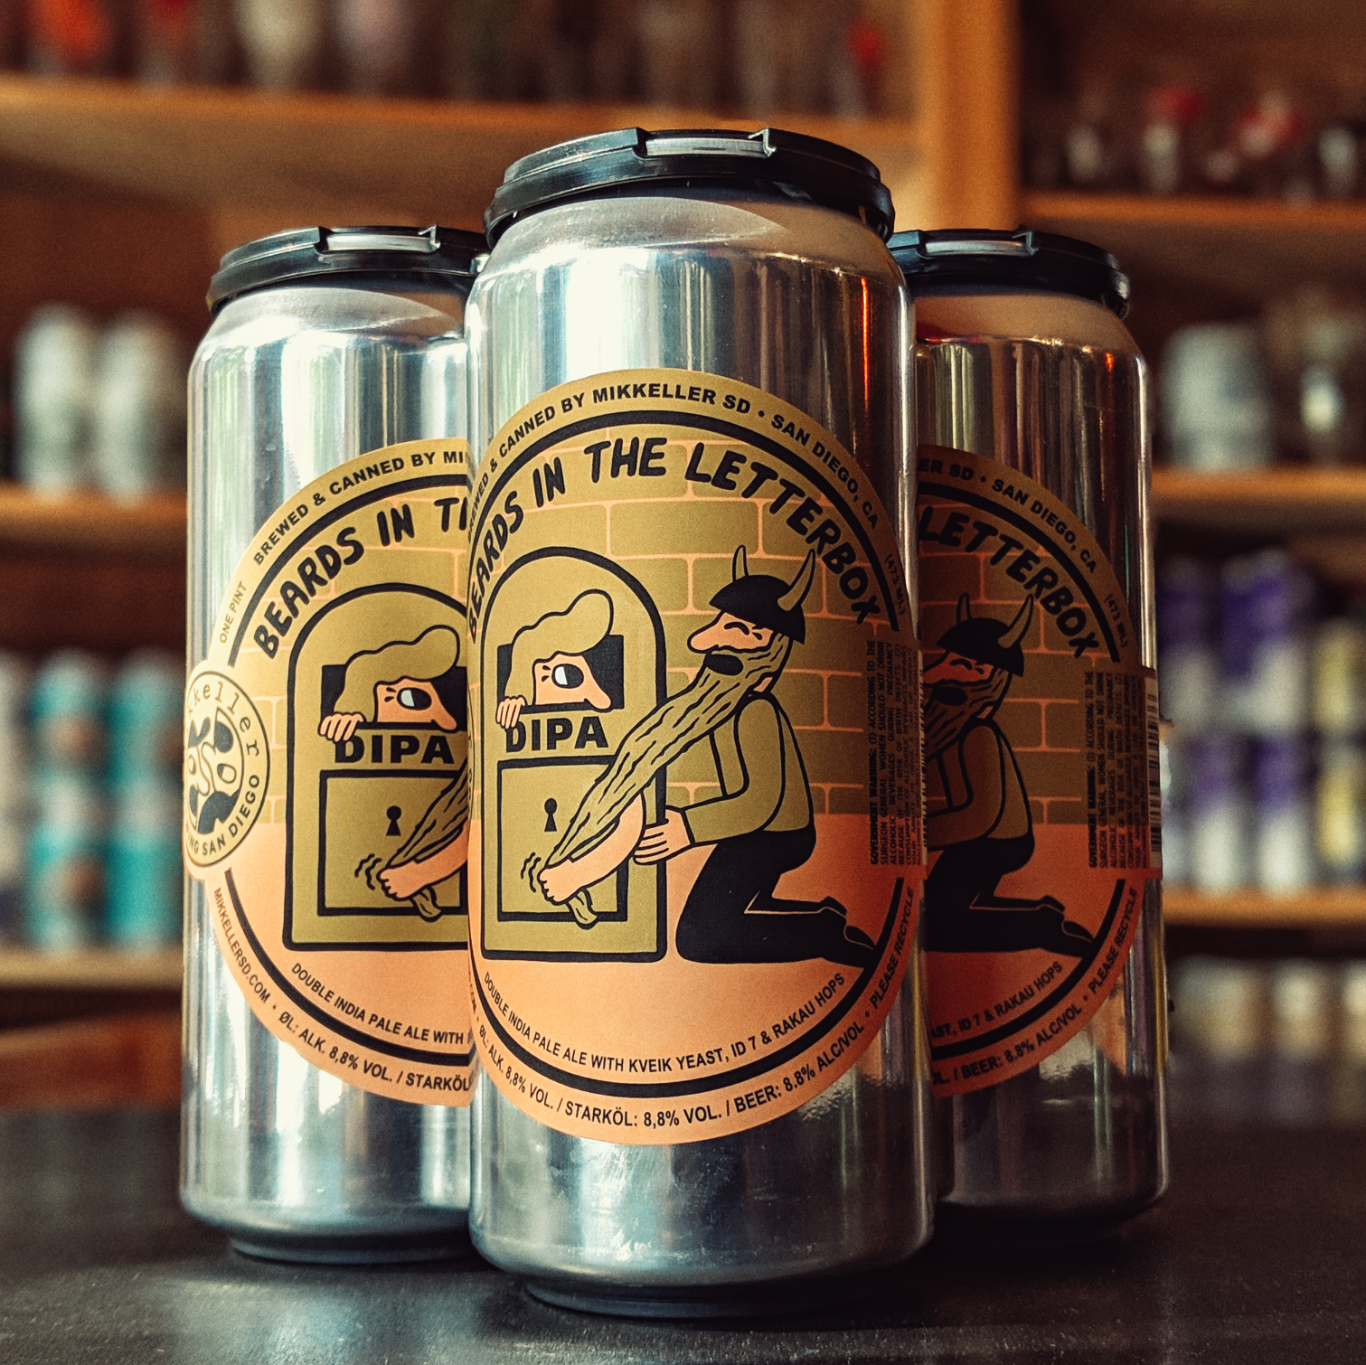 Mikkeller SD 'Beards in the Letterbox' Double IPA 16oz Can